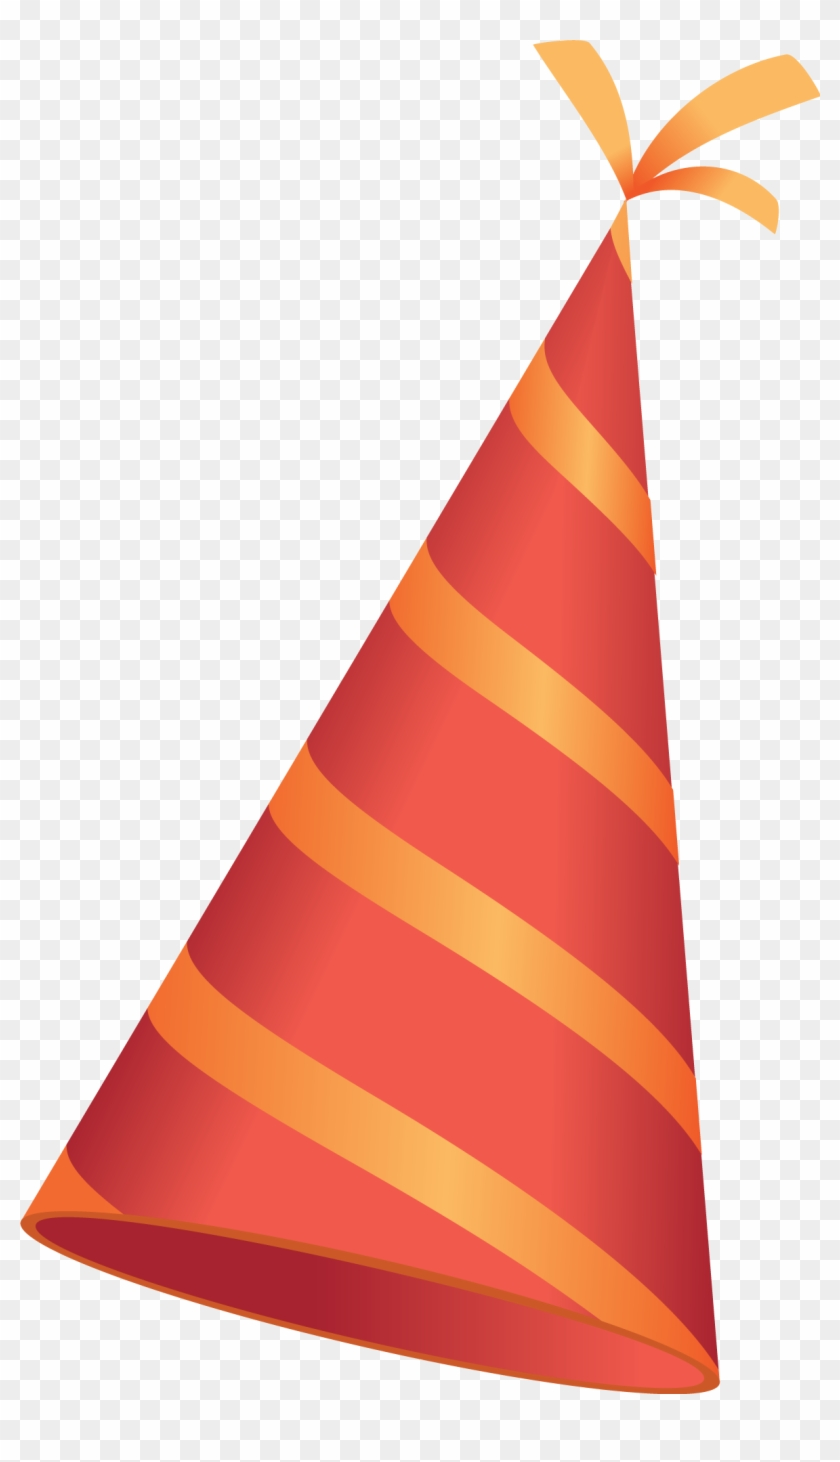 Birthday Hat Transparent Clipart Free Clip Art Images - Birthday Hat Vector Png #292604